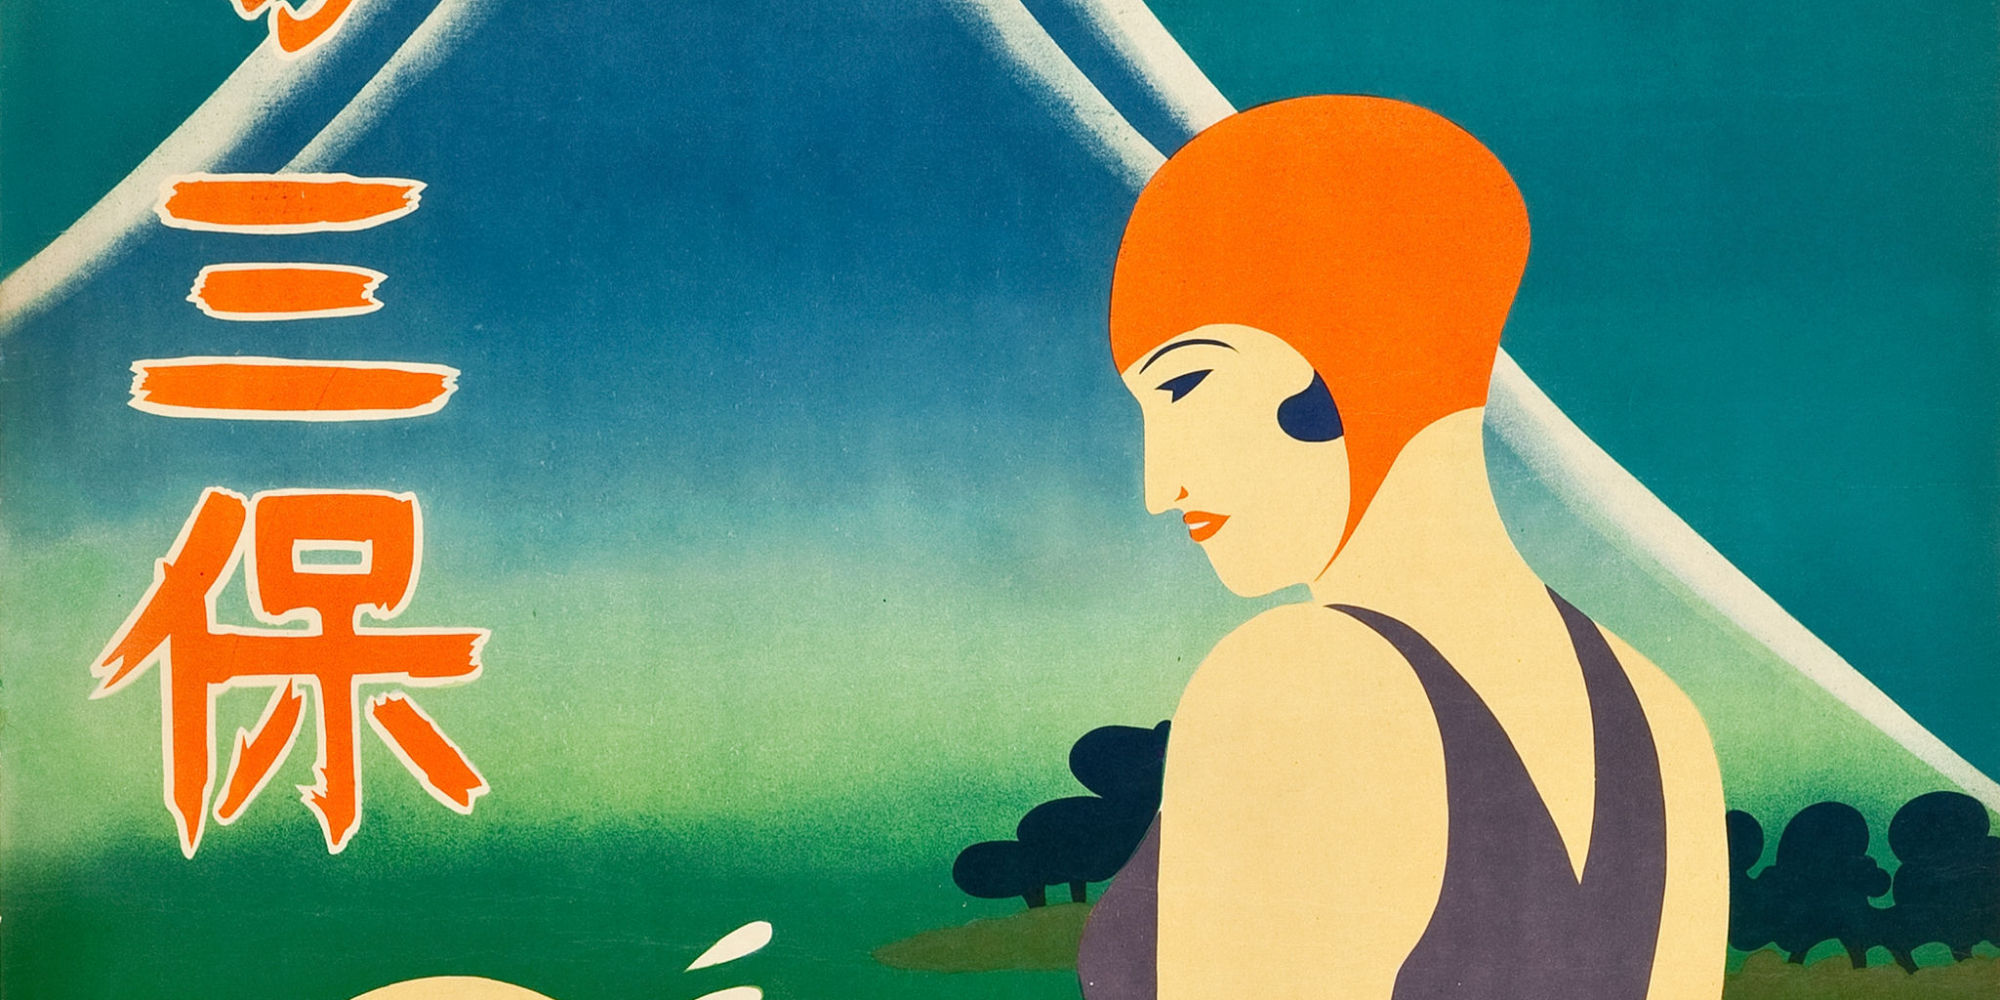 15 Vintage Japanese Travel Posters That Spark An Urge To